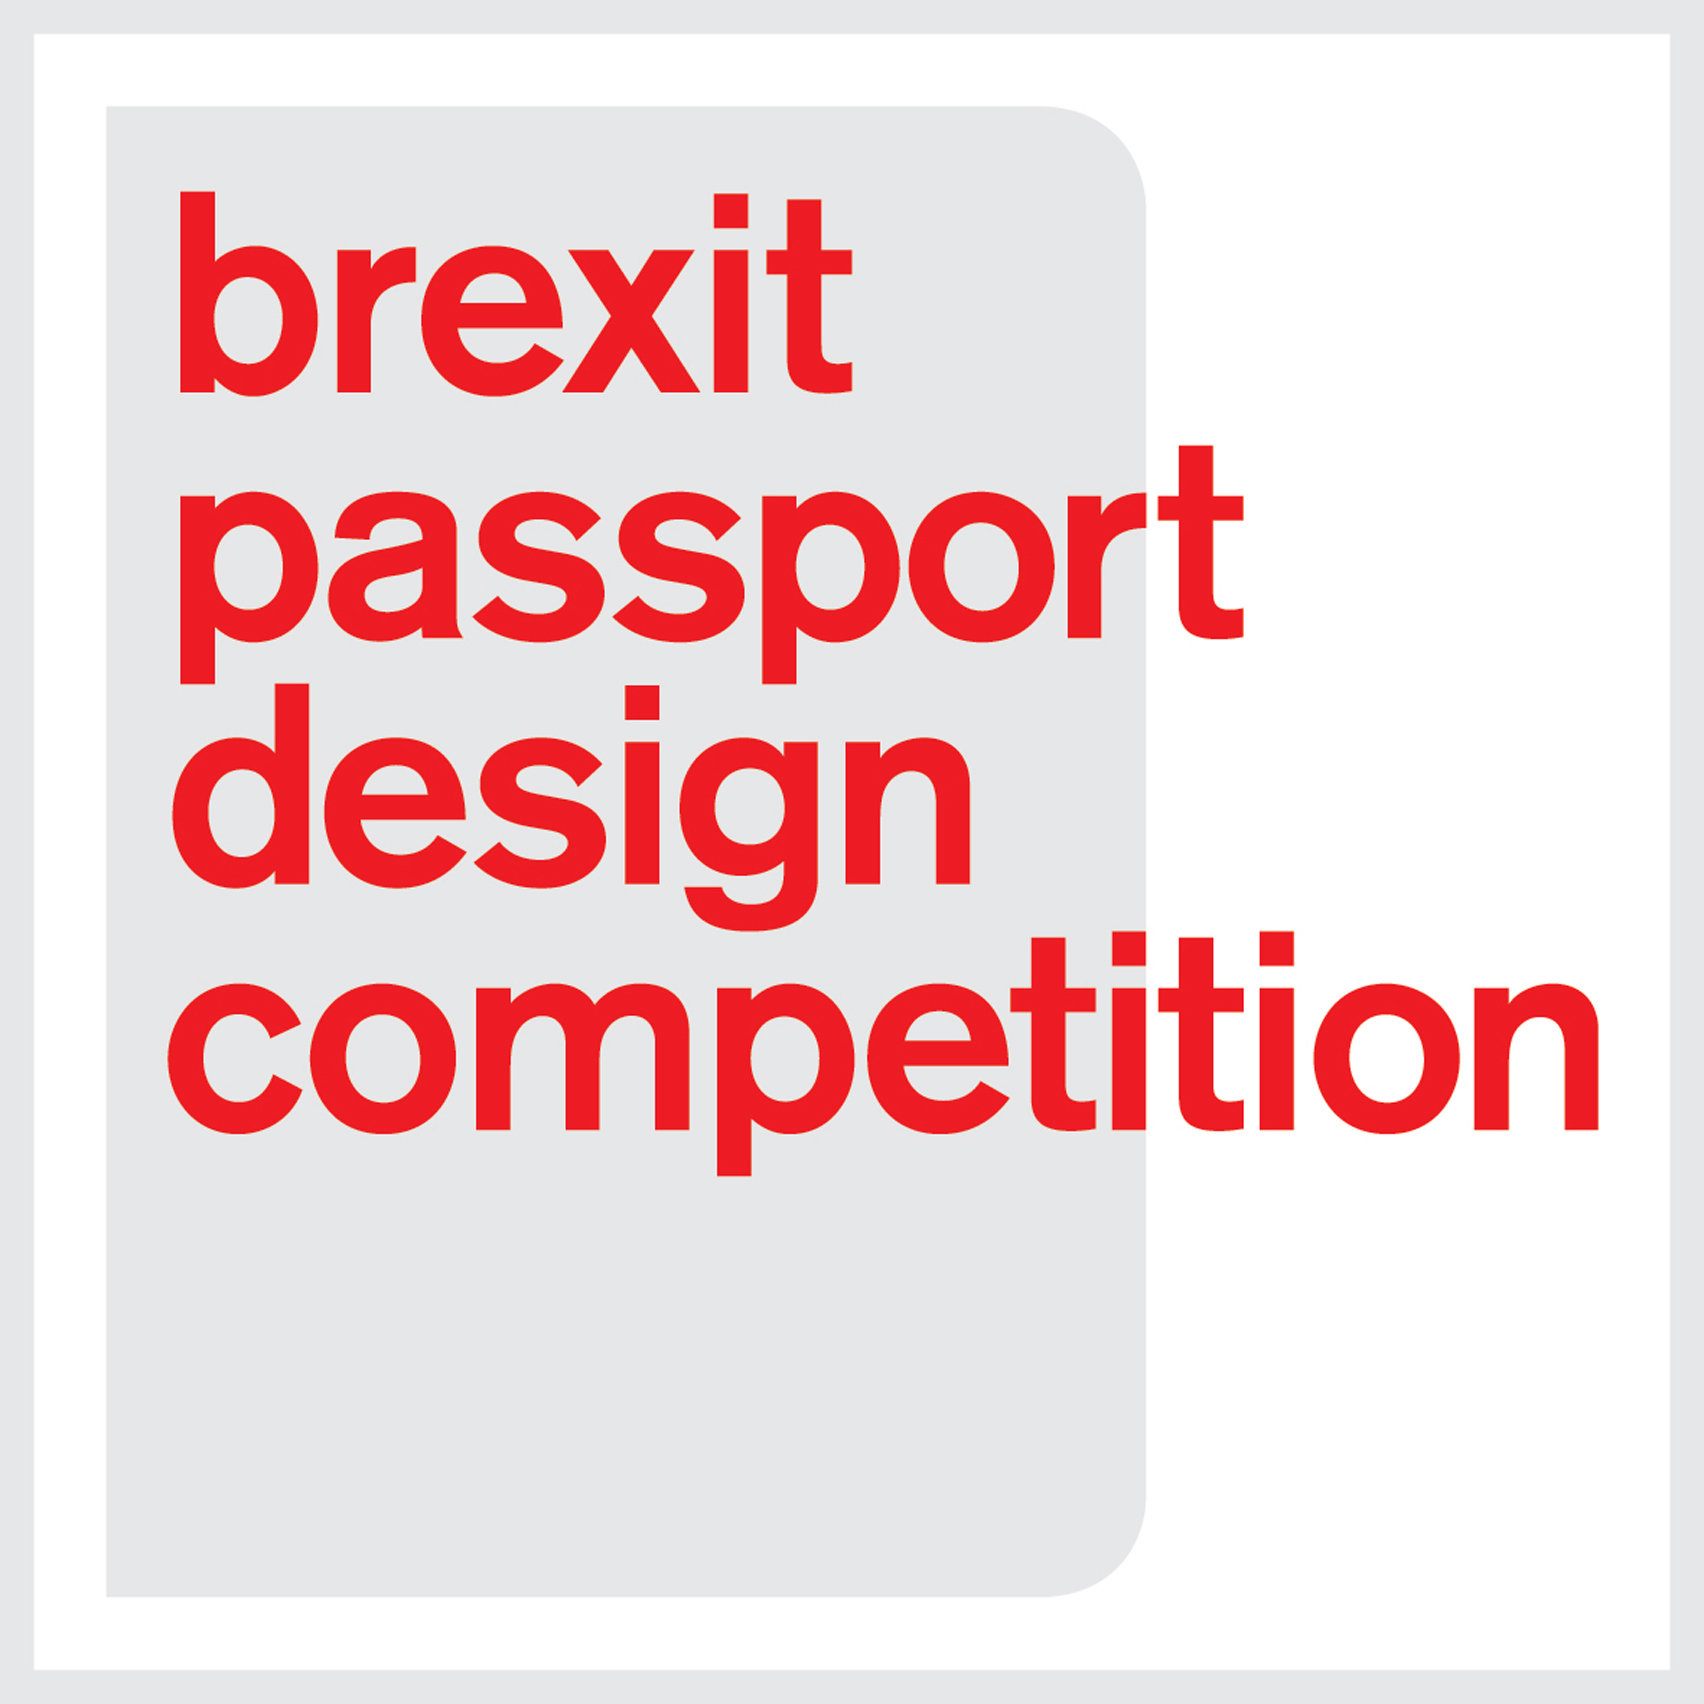 Deadline approaching for Dezeen's Brexit passport design competition